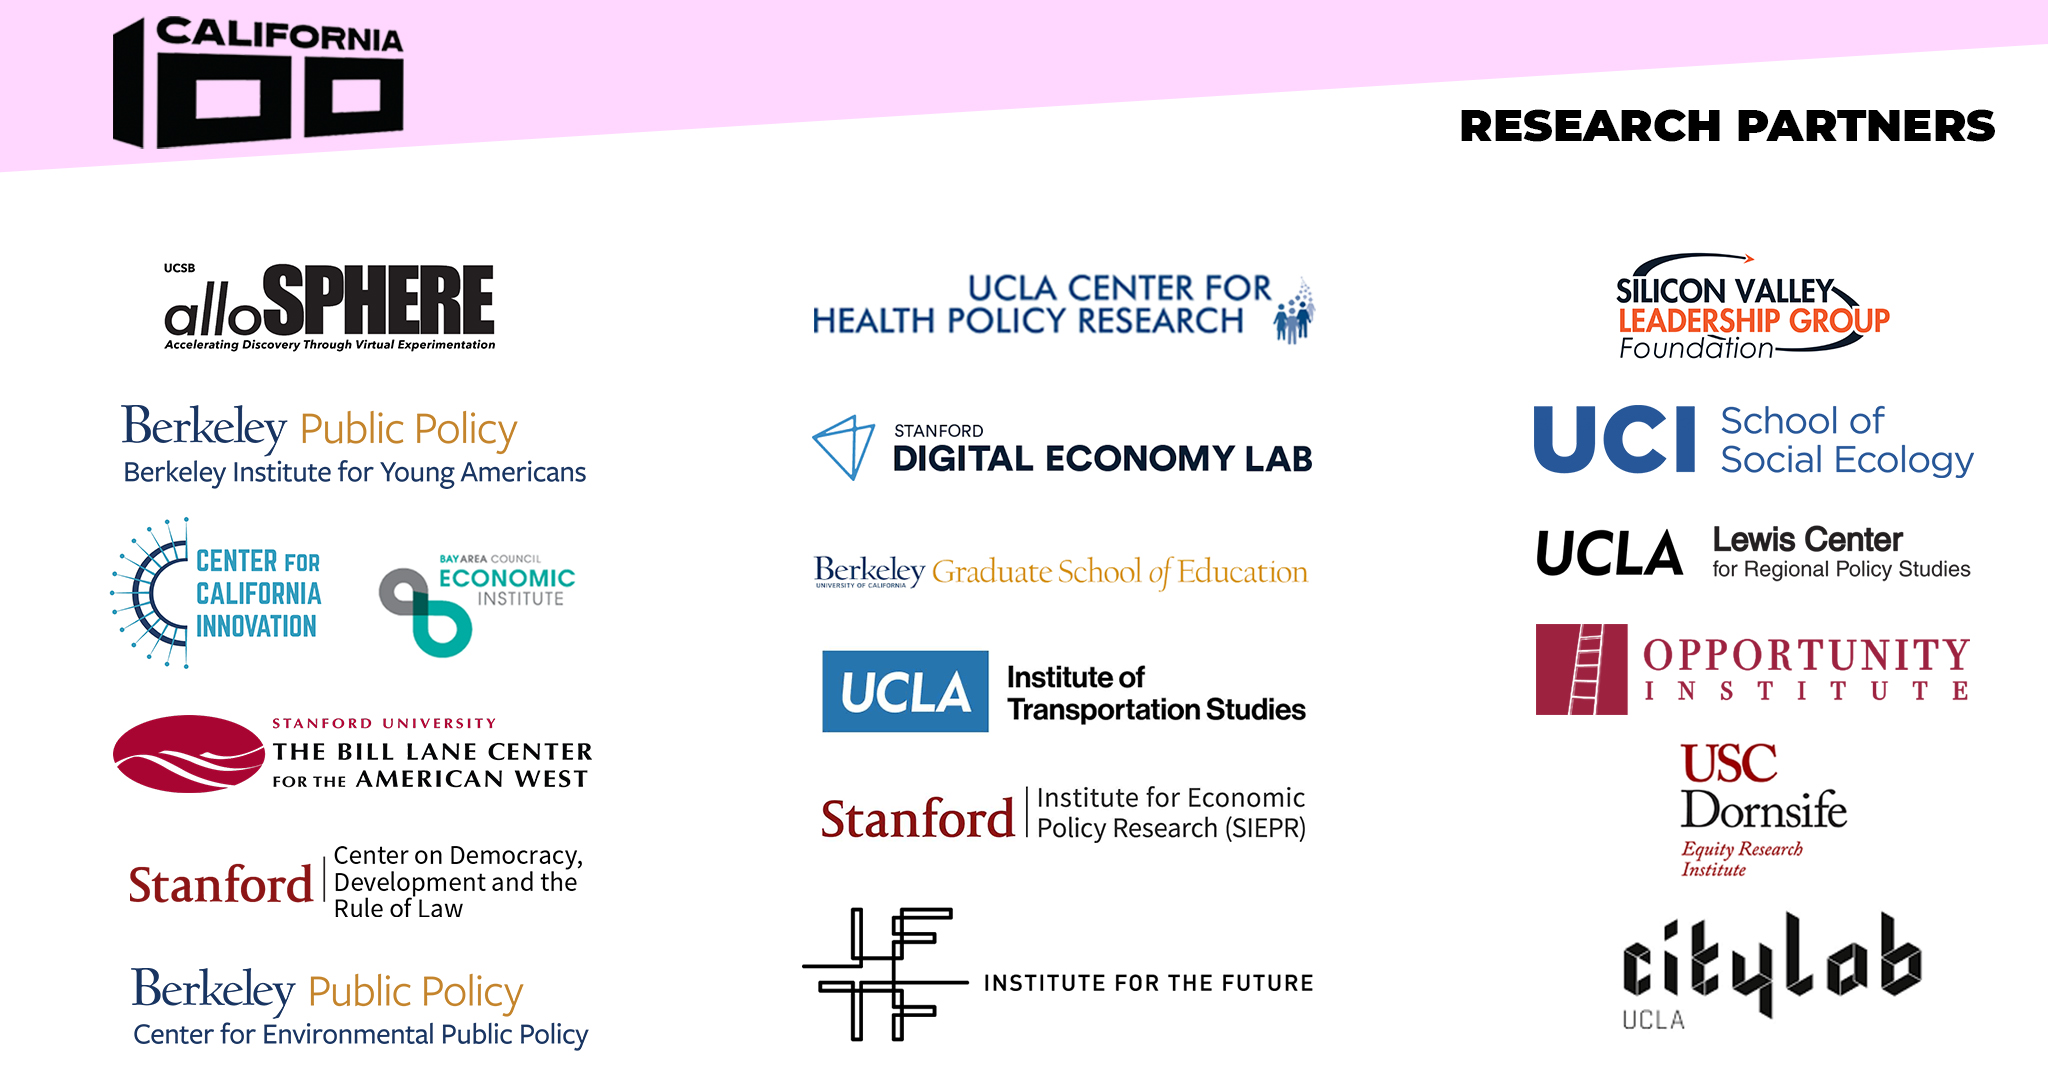 California 100 Announces Research Partners to Examine Policy Scenarios for the State's Future